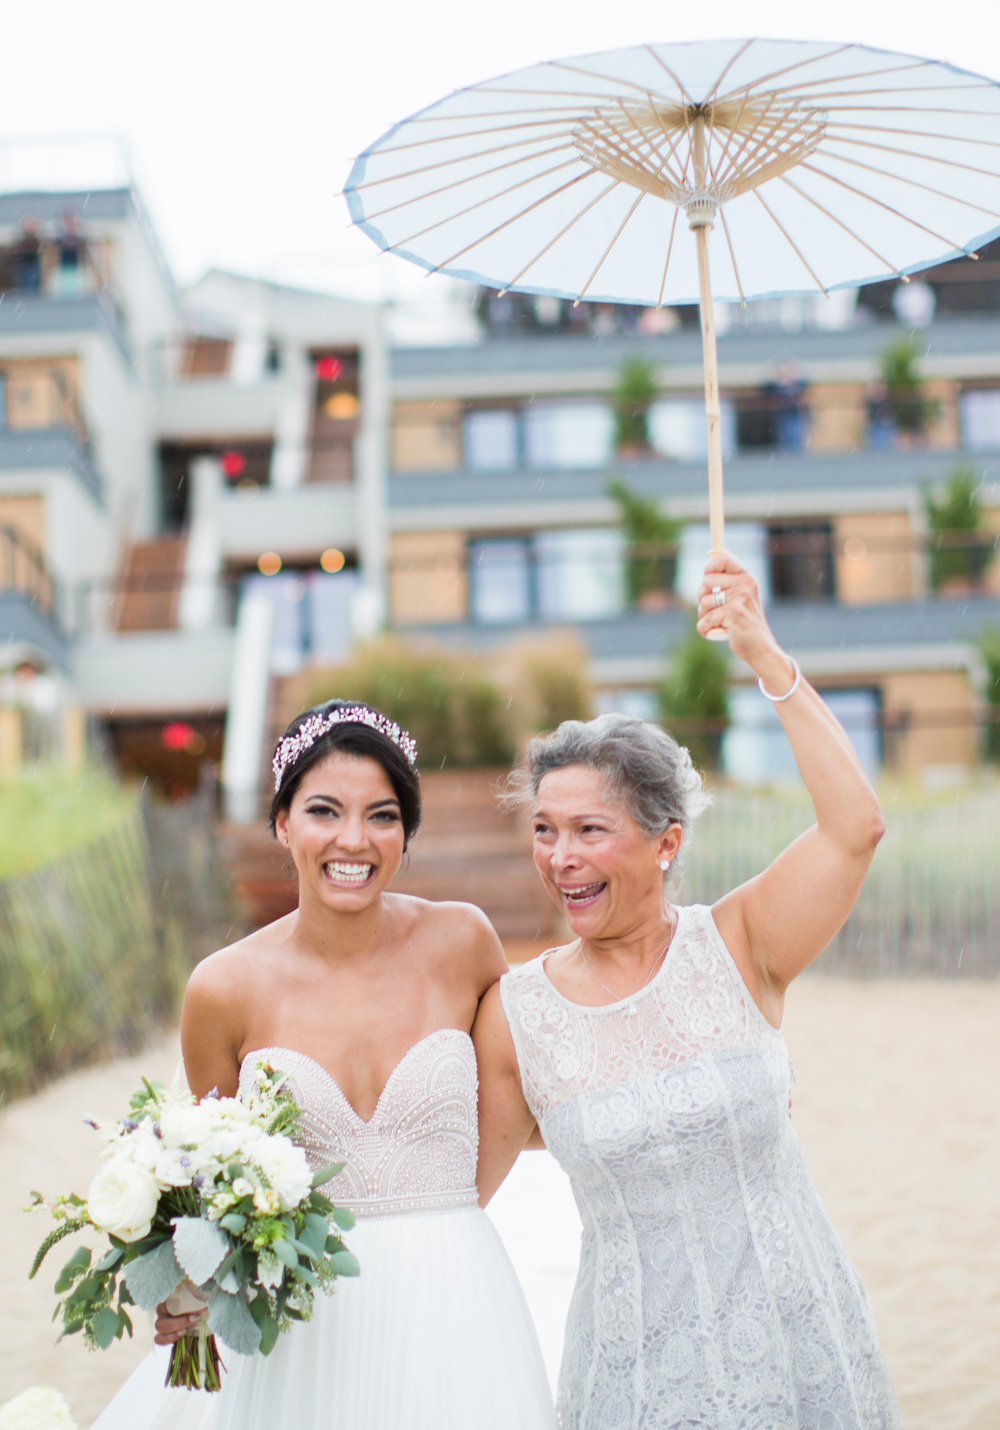 BETSI EWING STUDIO_MONTAUK WEDDING_0045.JPG